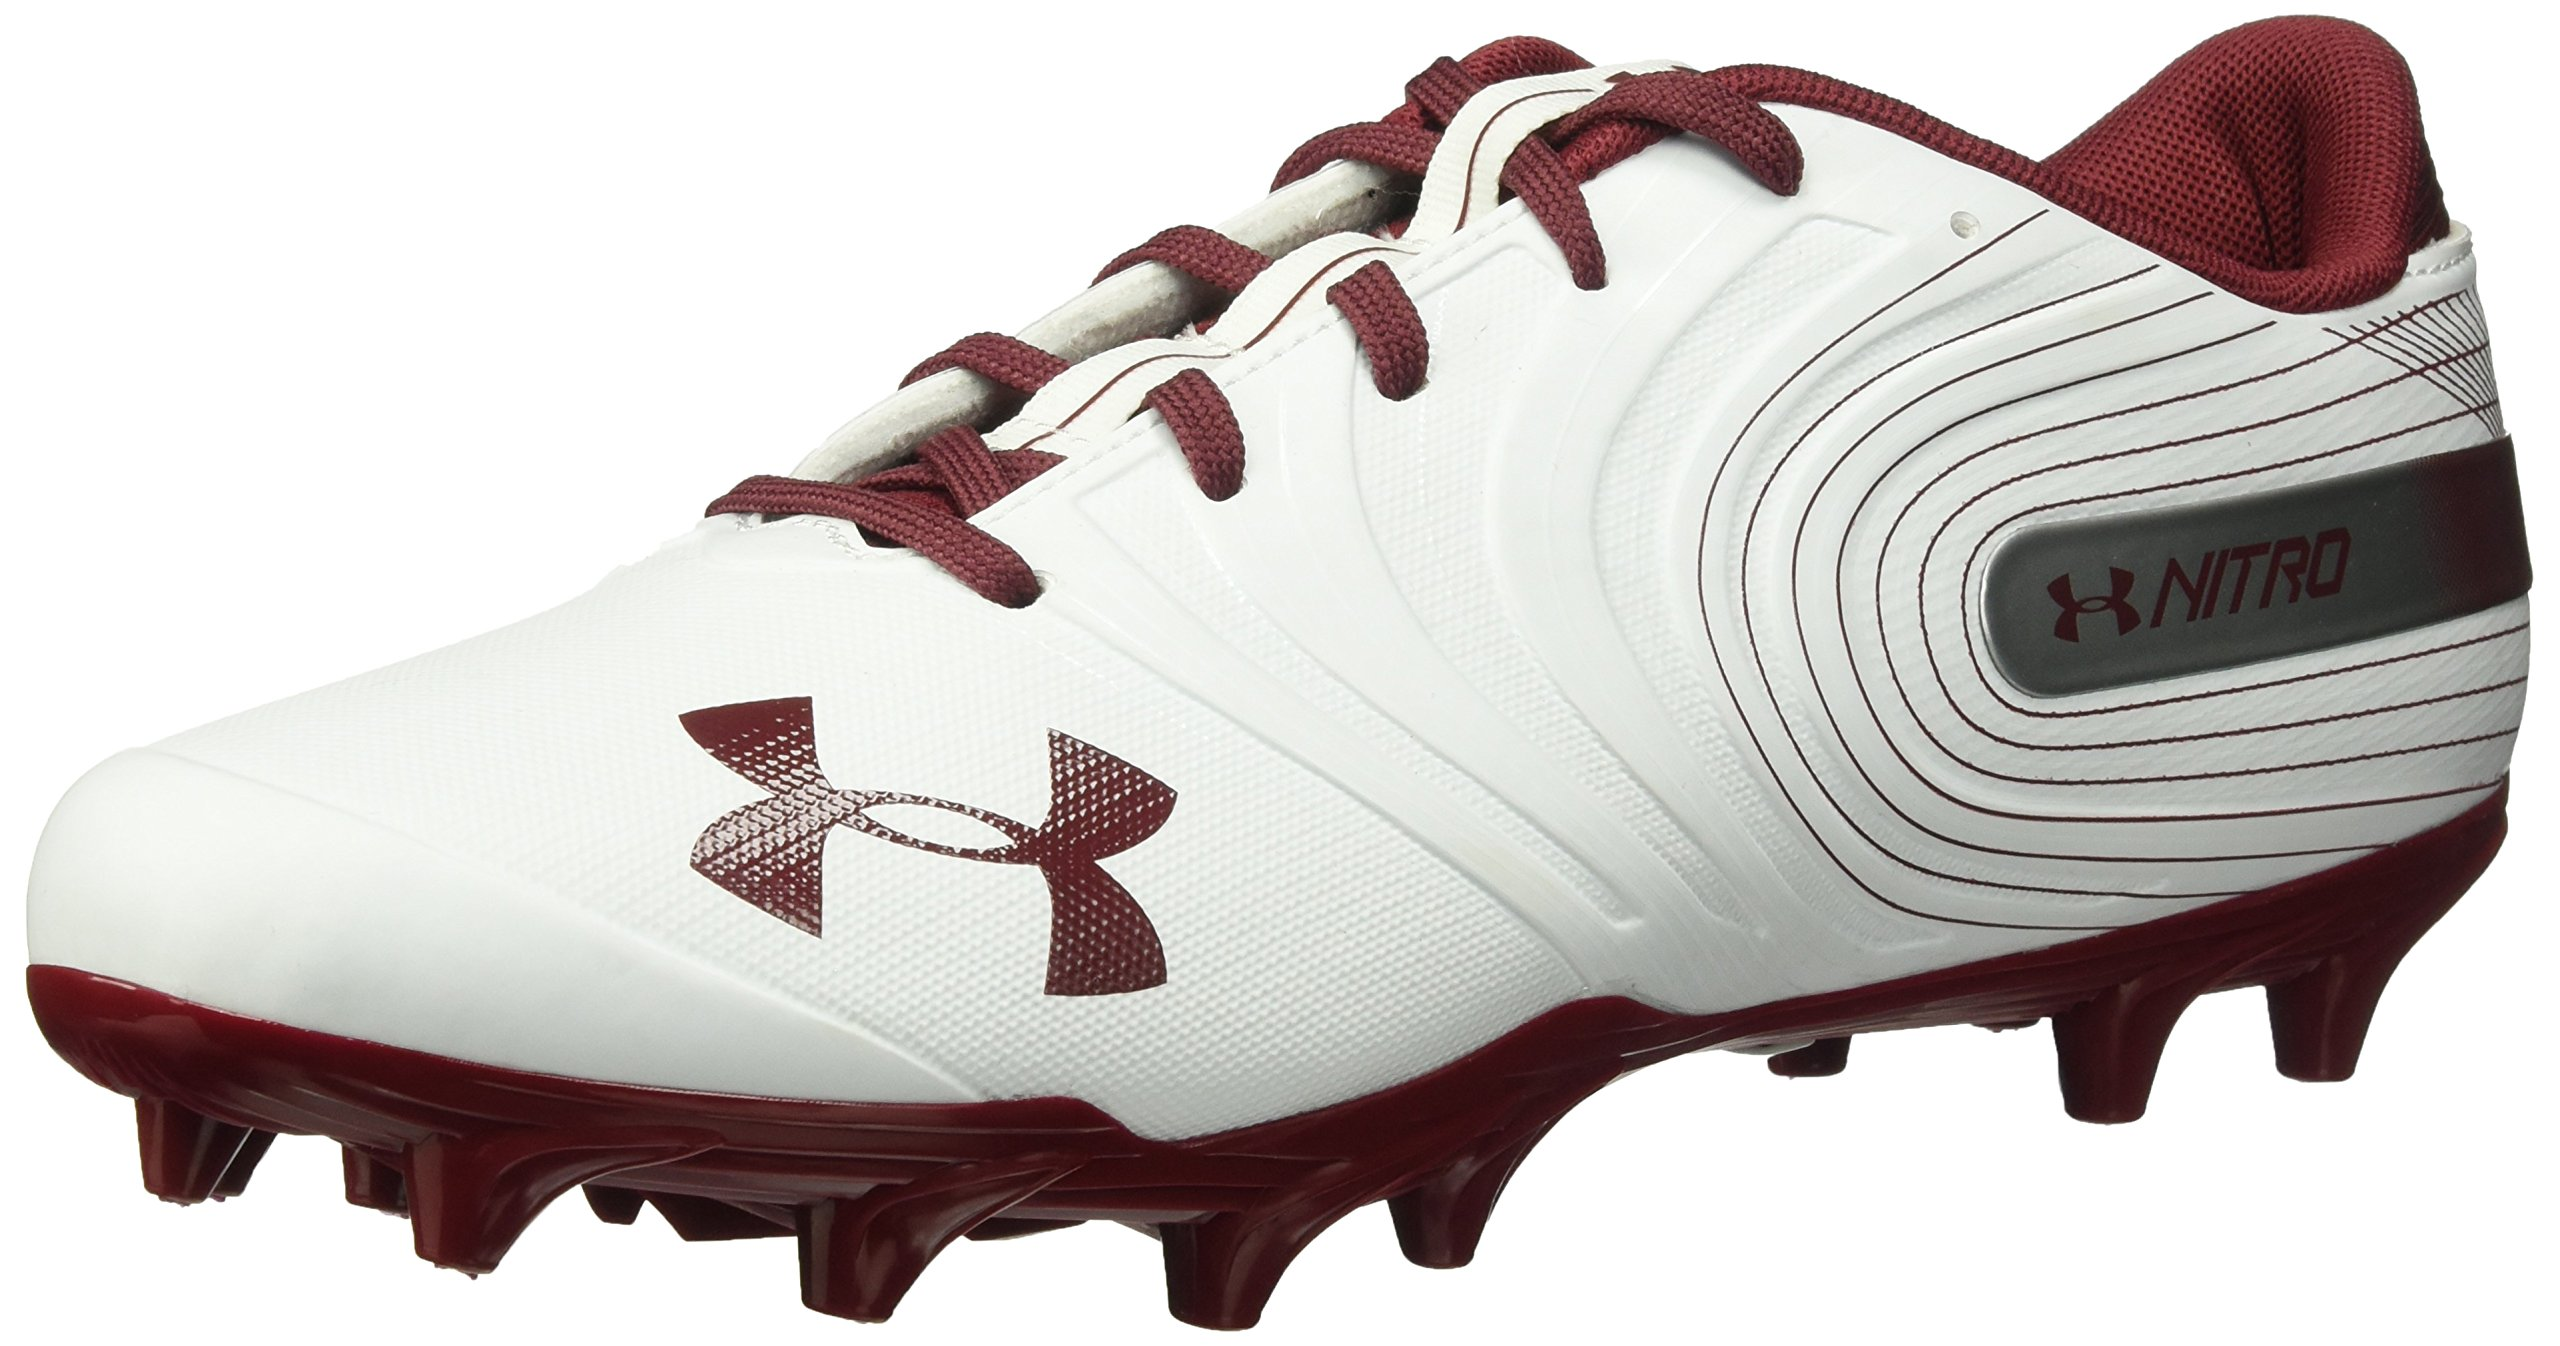 Under Armour Men's Nitro Low MC Football Shoe, White, 11